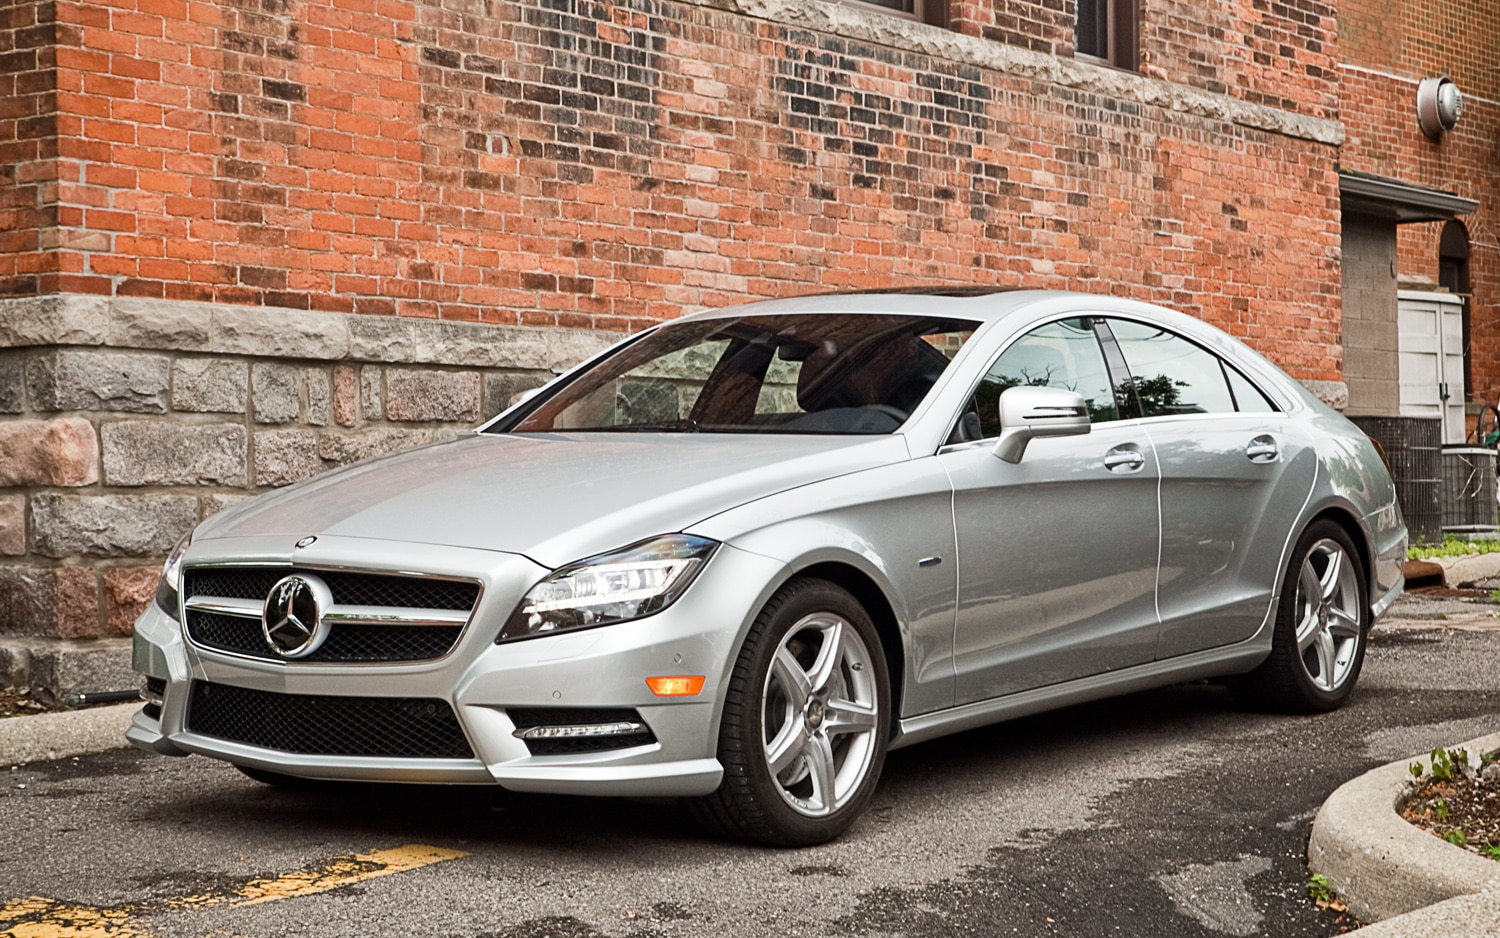 pricing strategy mercedes benz In the first quarter of 2014, mercedes-benz sold 64,115 units, increasing its passenger car sales in china by 47 percent compared to the same period last year, a growth rate that ranks highest among the german premium brands in china.